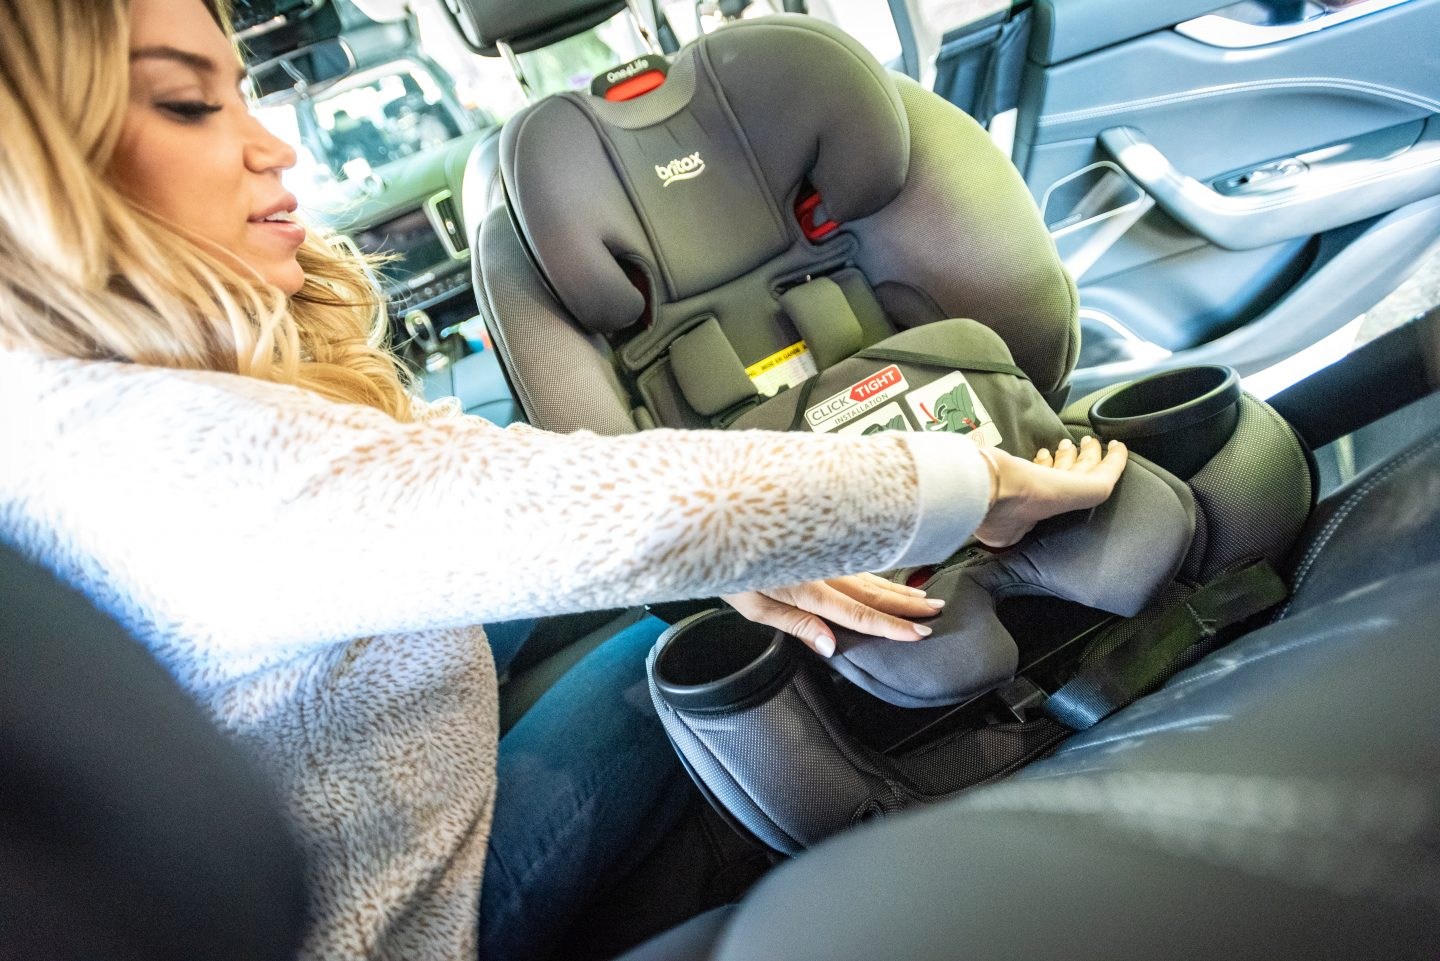 Britax carseat, Britax, carseat safety, carseat, mom tested, mom blog, mommy blog, motherhood, carseat One4Life, carseat that grows with them, mom blogger, mom life, mommy and me, motherhood blog